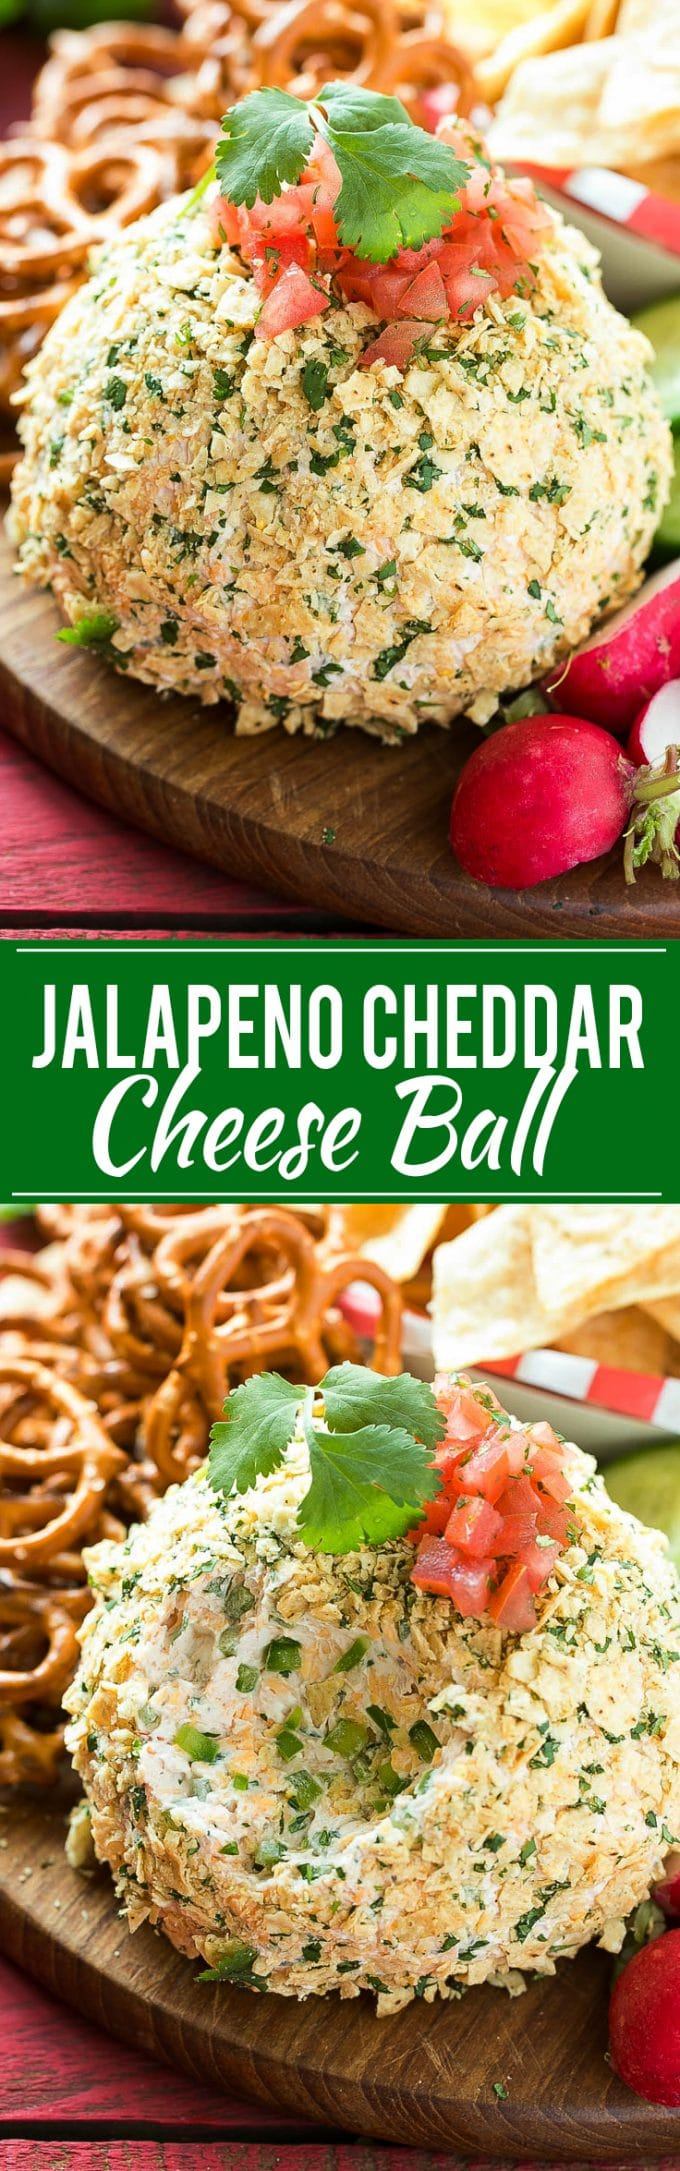 Jalapeno Cheddar Cheese Ball Recipe | Cheddar Cheese Ball | Best Cheddar Cheese Ball | Best Jalapeno Cheddar Cheese Ball | Cheese Ball